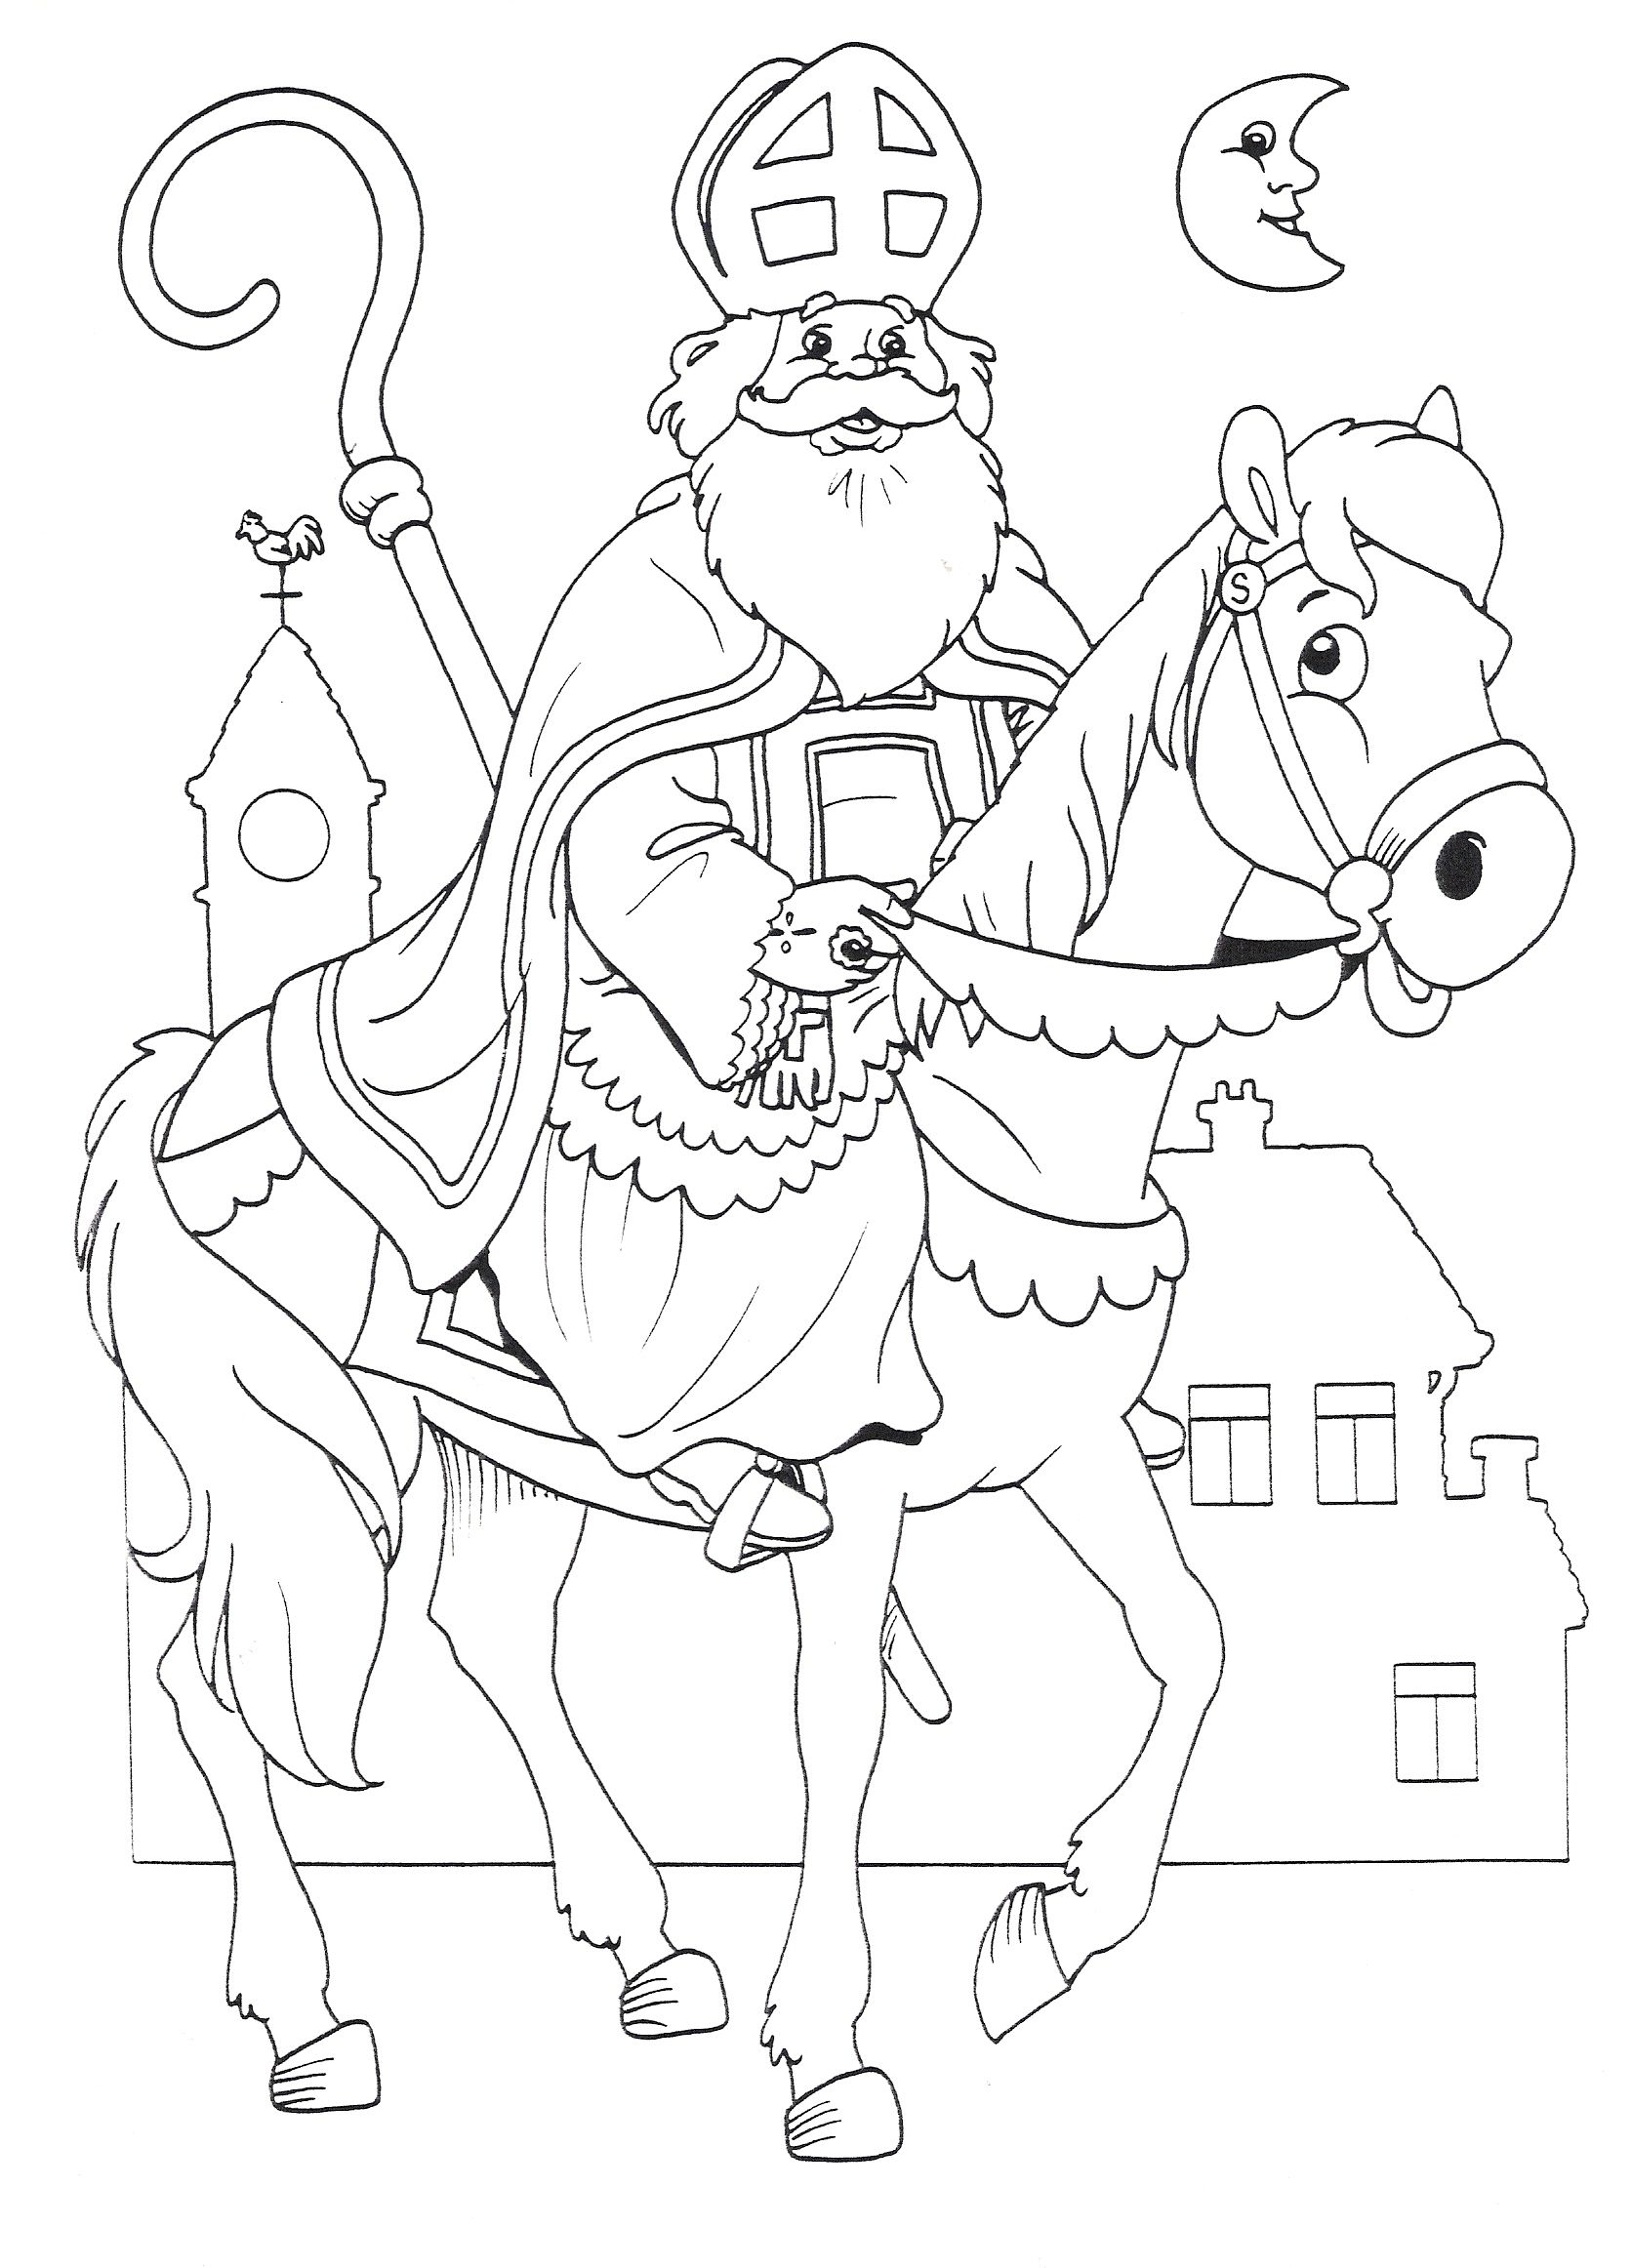 Pin By Hildegard Aigner On Sinterklaas Kleurplaten Free Christmas Coloring Pages Christmas Coloring Pages Painting Templates